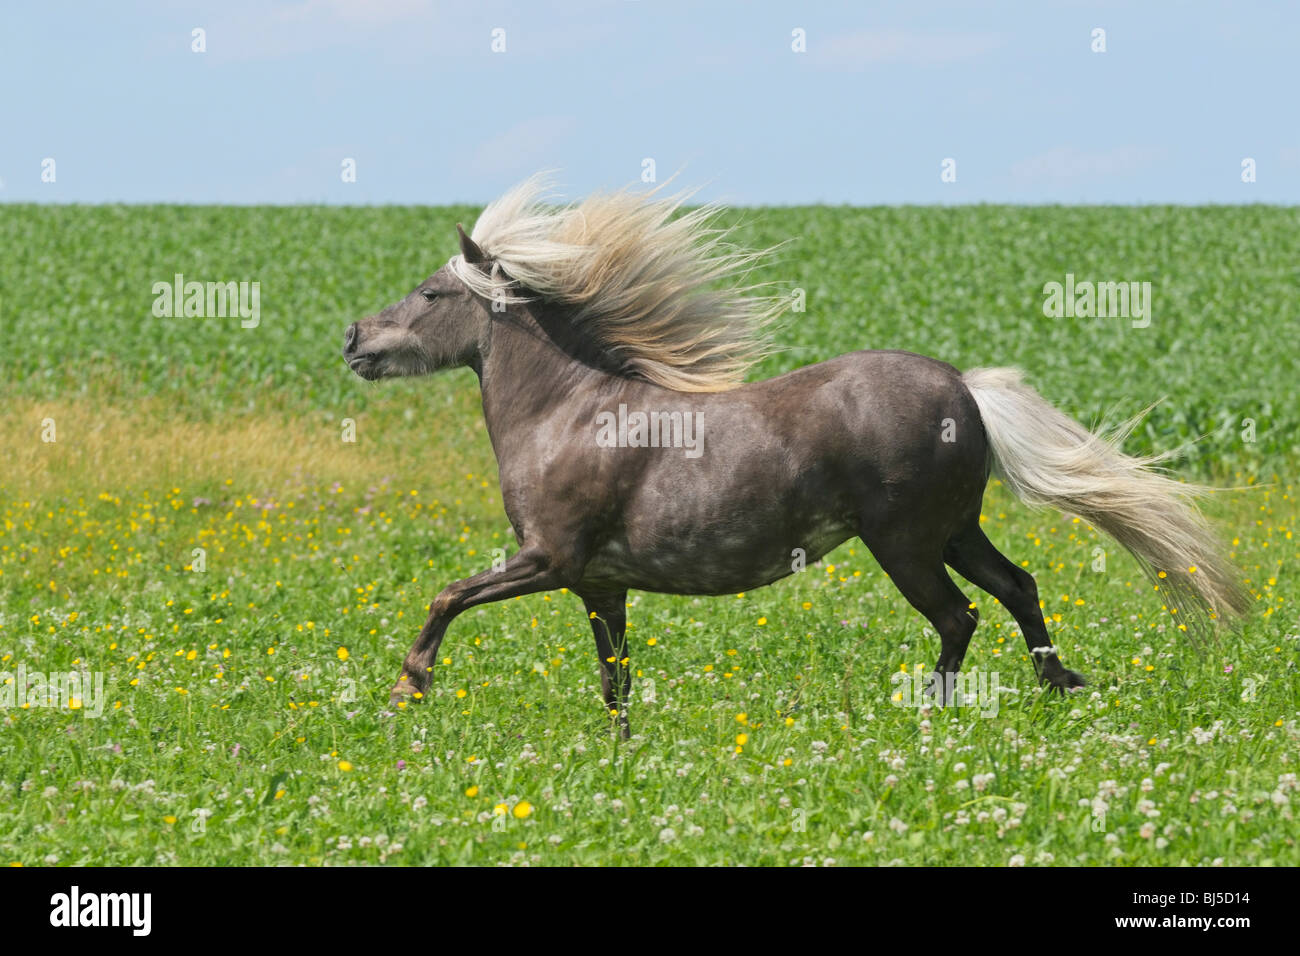 Silver dapple Shetland Pony galloping in a meadow - Stock Image